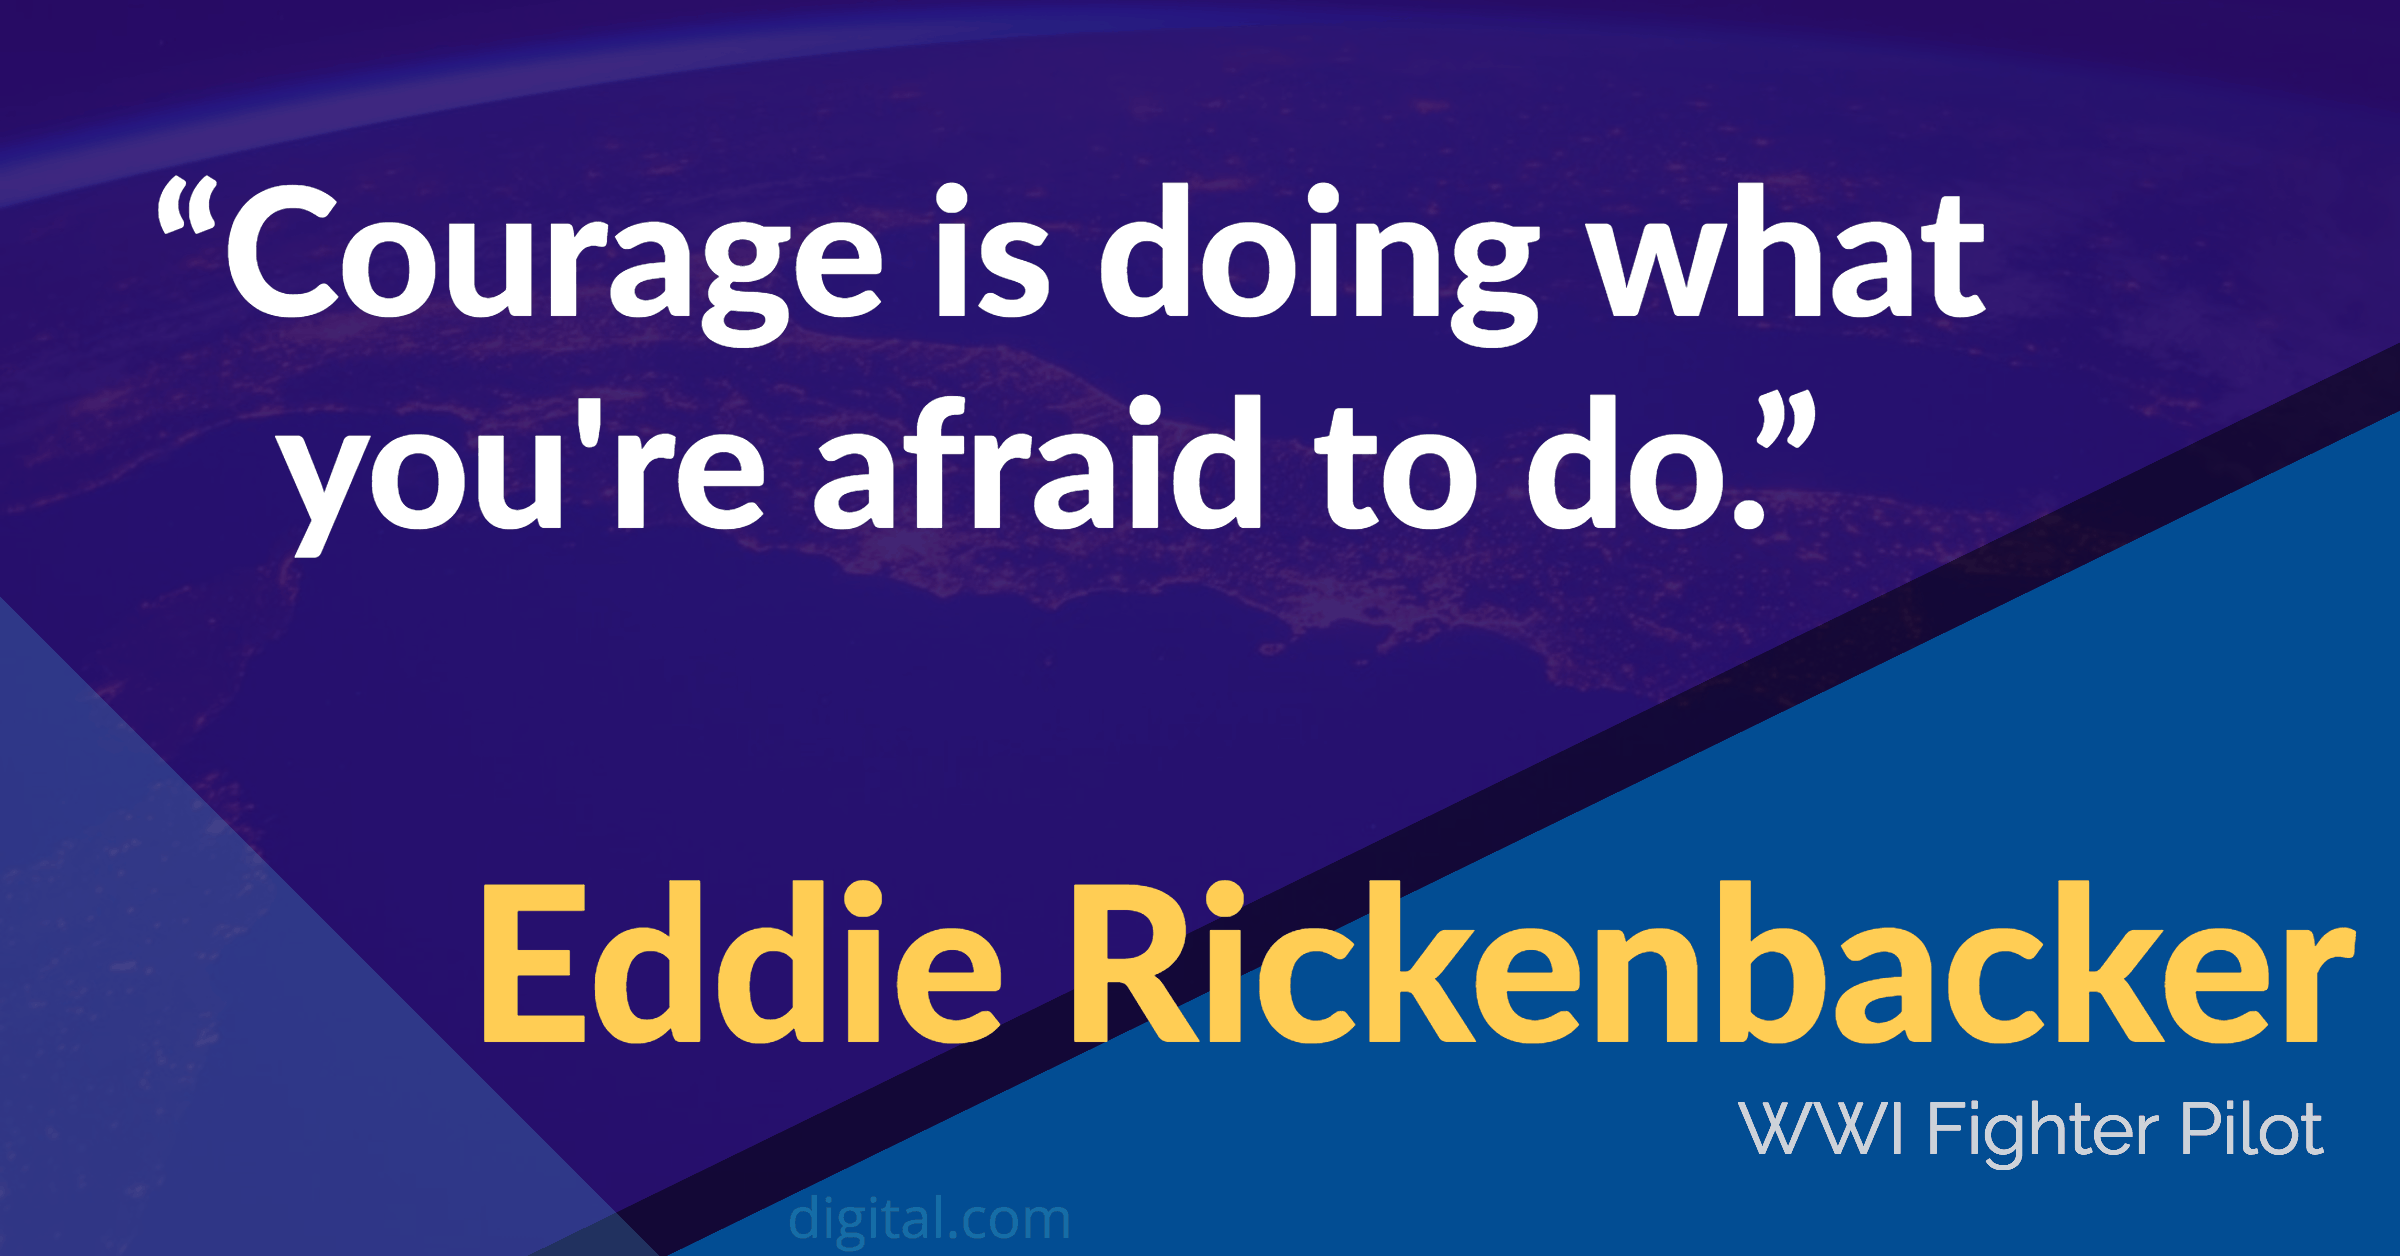 eddie rickenbacker leadership quotes